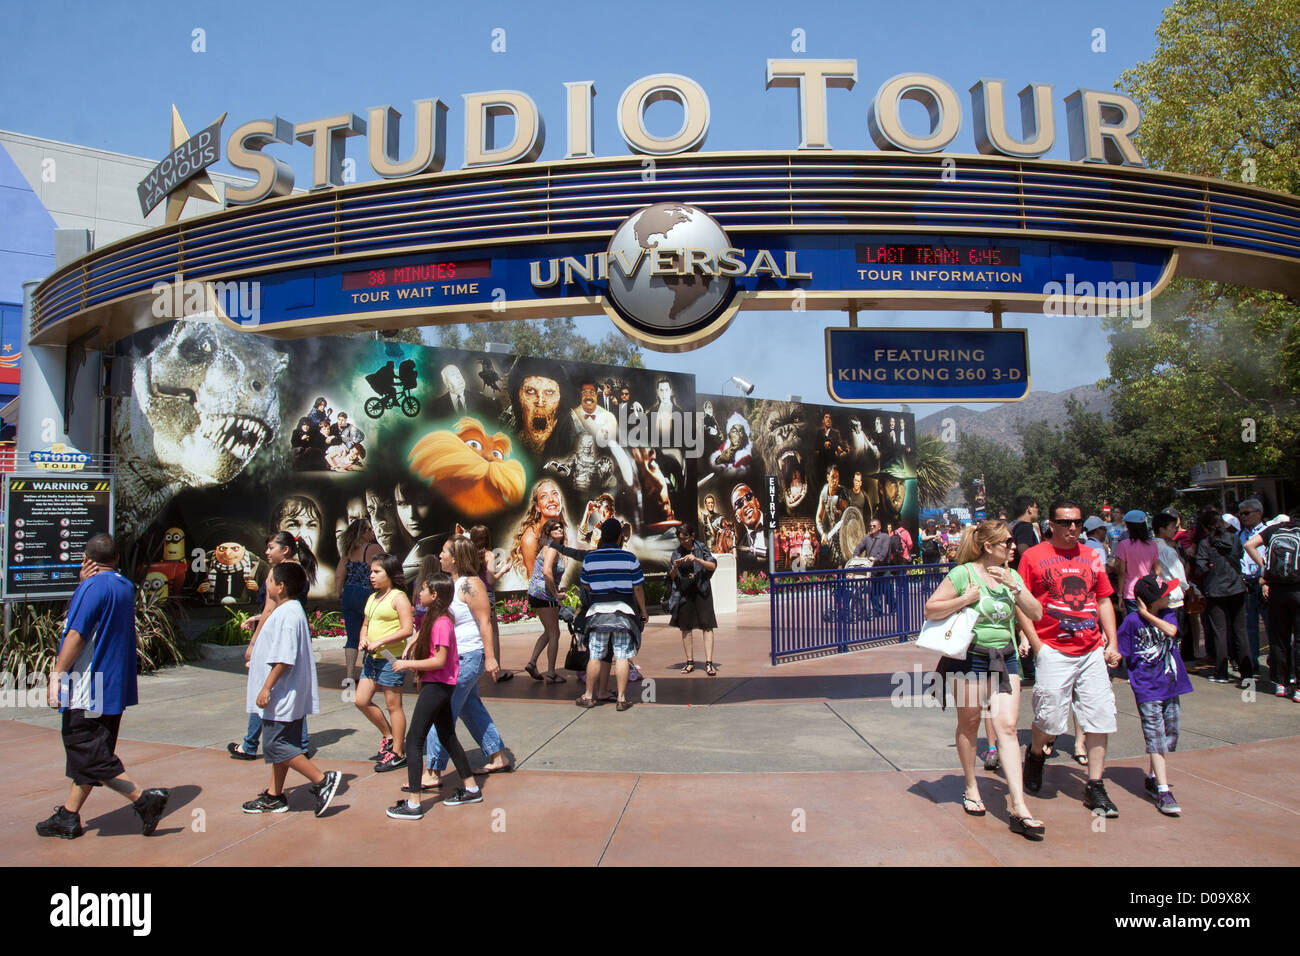 Movie Studio Tour California High Resolution Stock Photography And Images Alamy